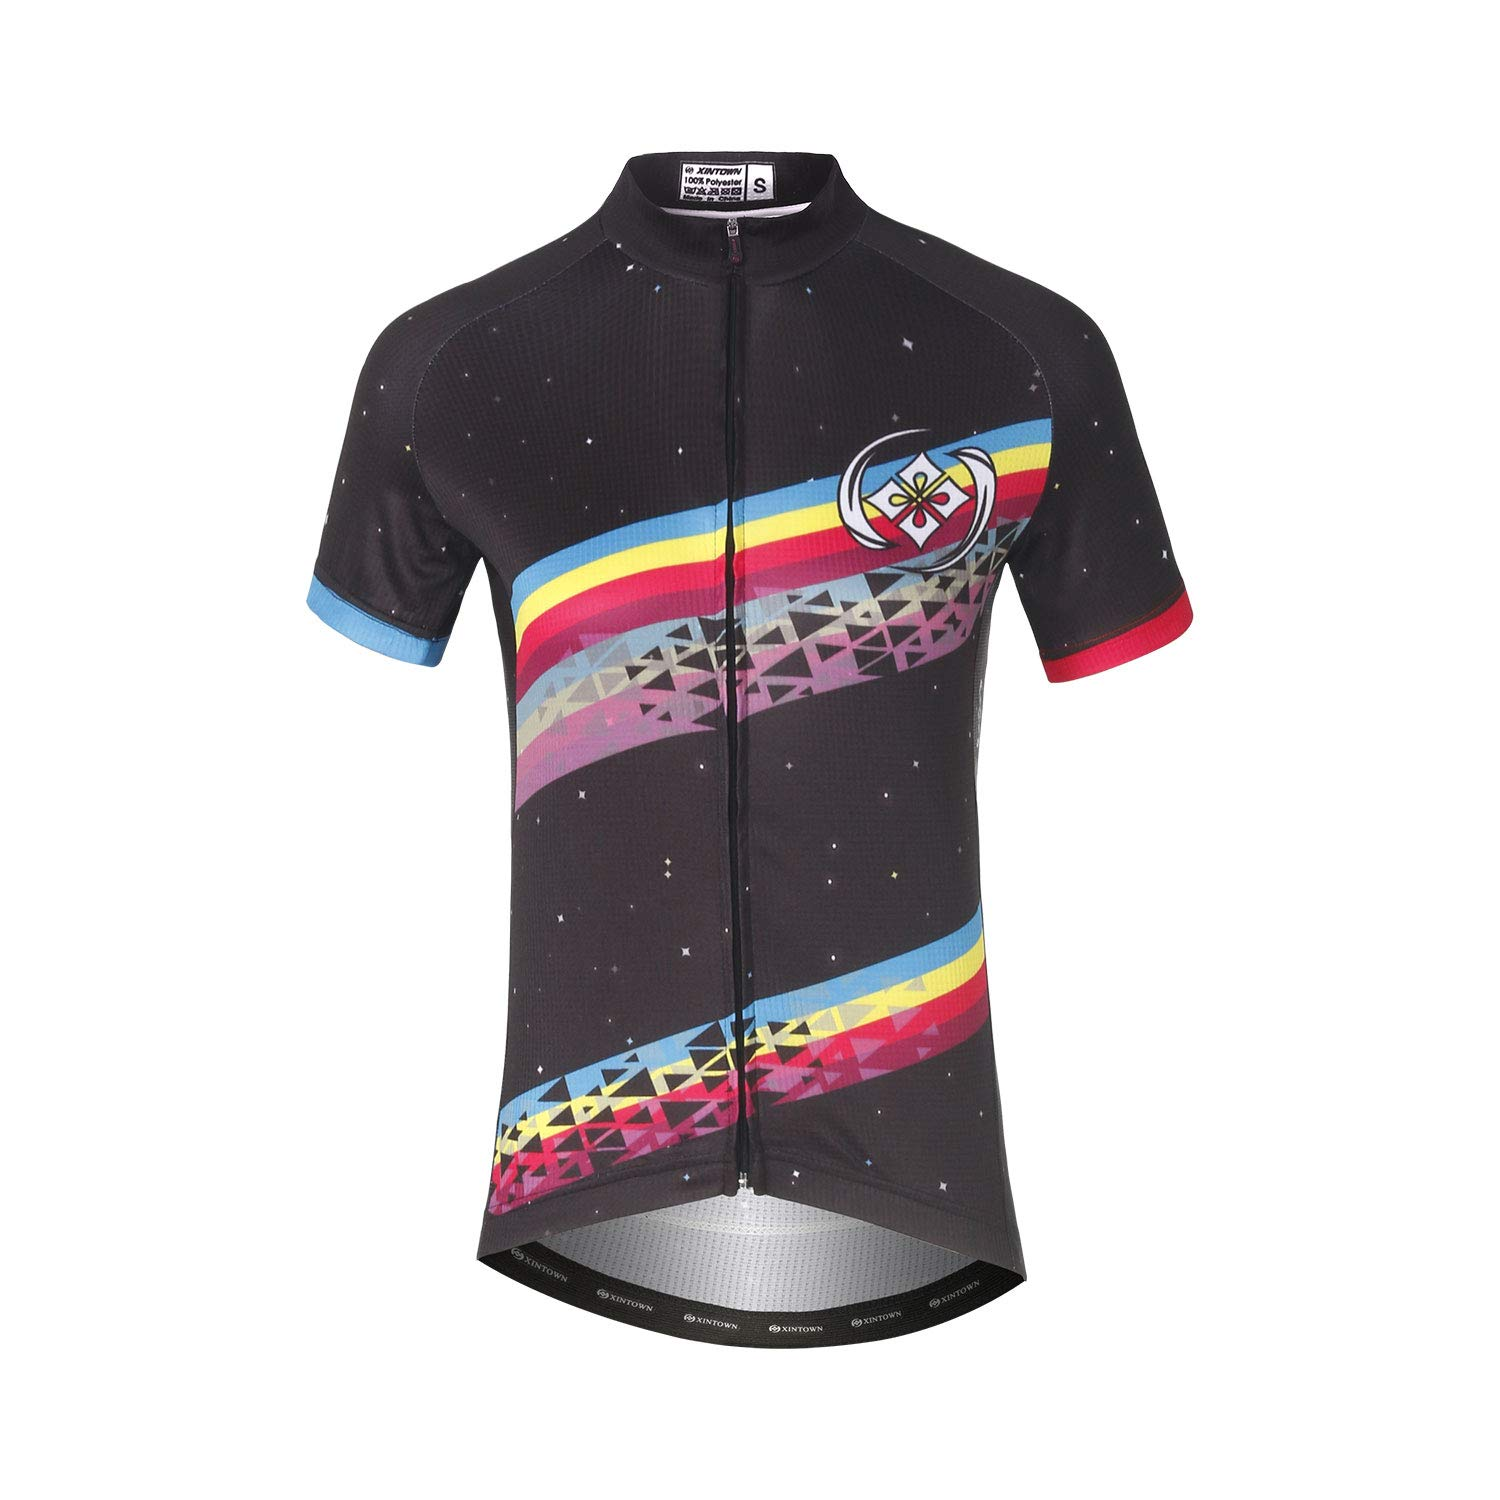 DuShow Women Cycling Jersey Short Sleeve Cycling Shirt Bicycle Bike Top Stripe-XXXL by DuShow